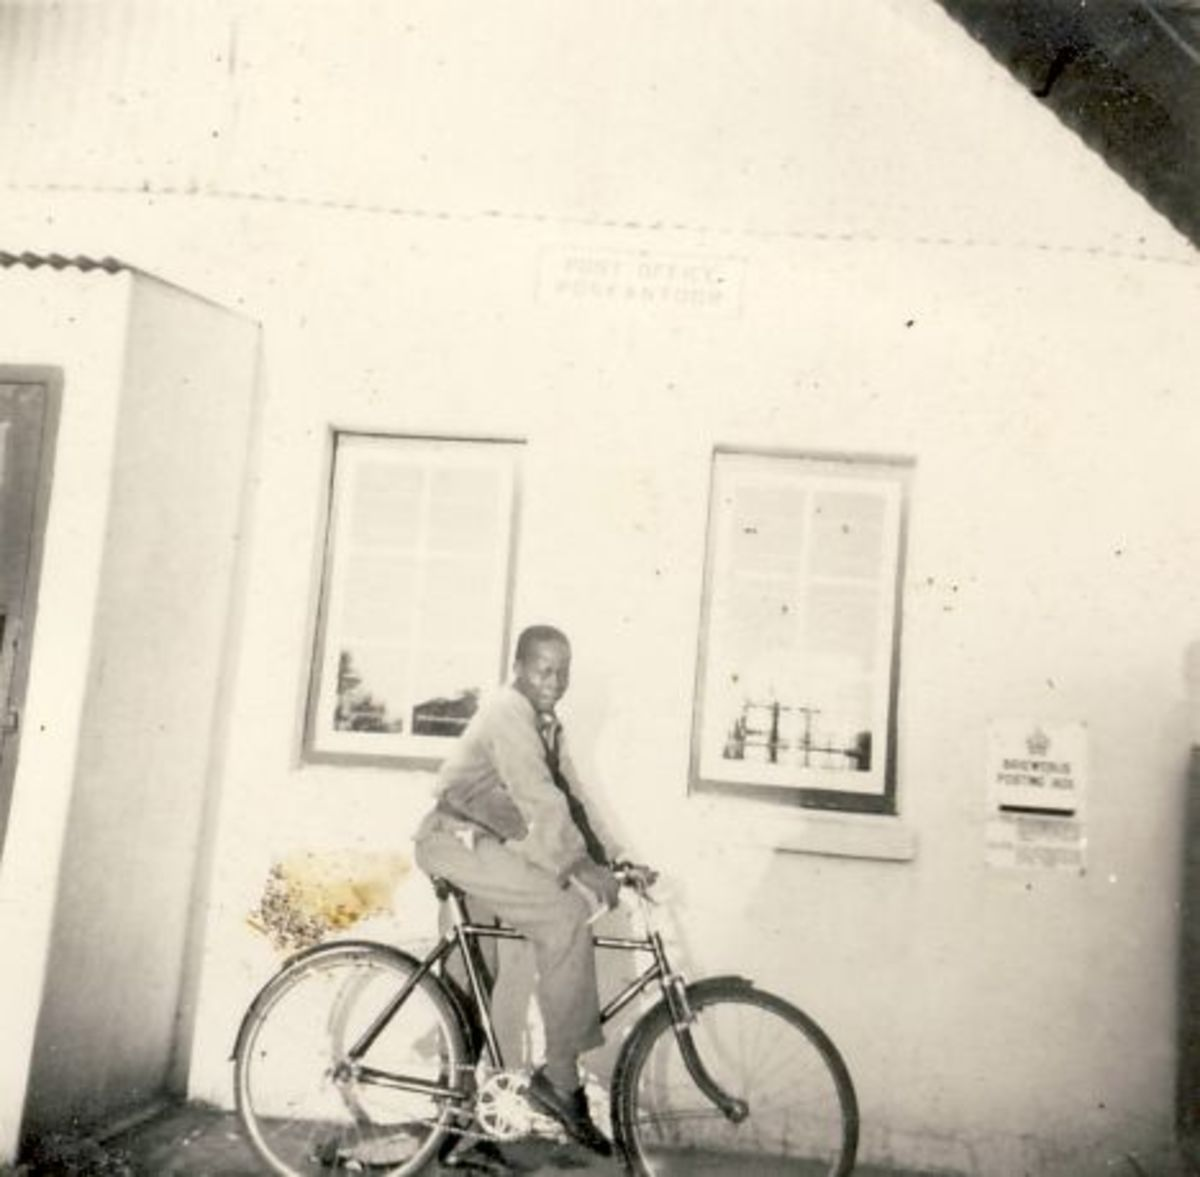 My great friend Boy Bikitsha on his bicycle in front of the Blythswood Post Office